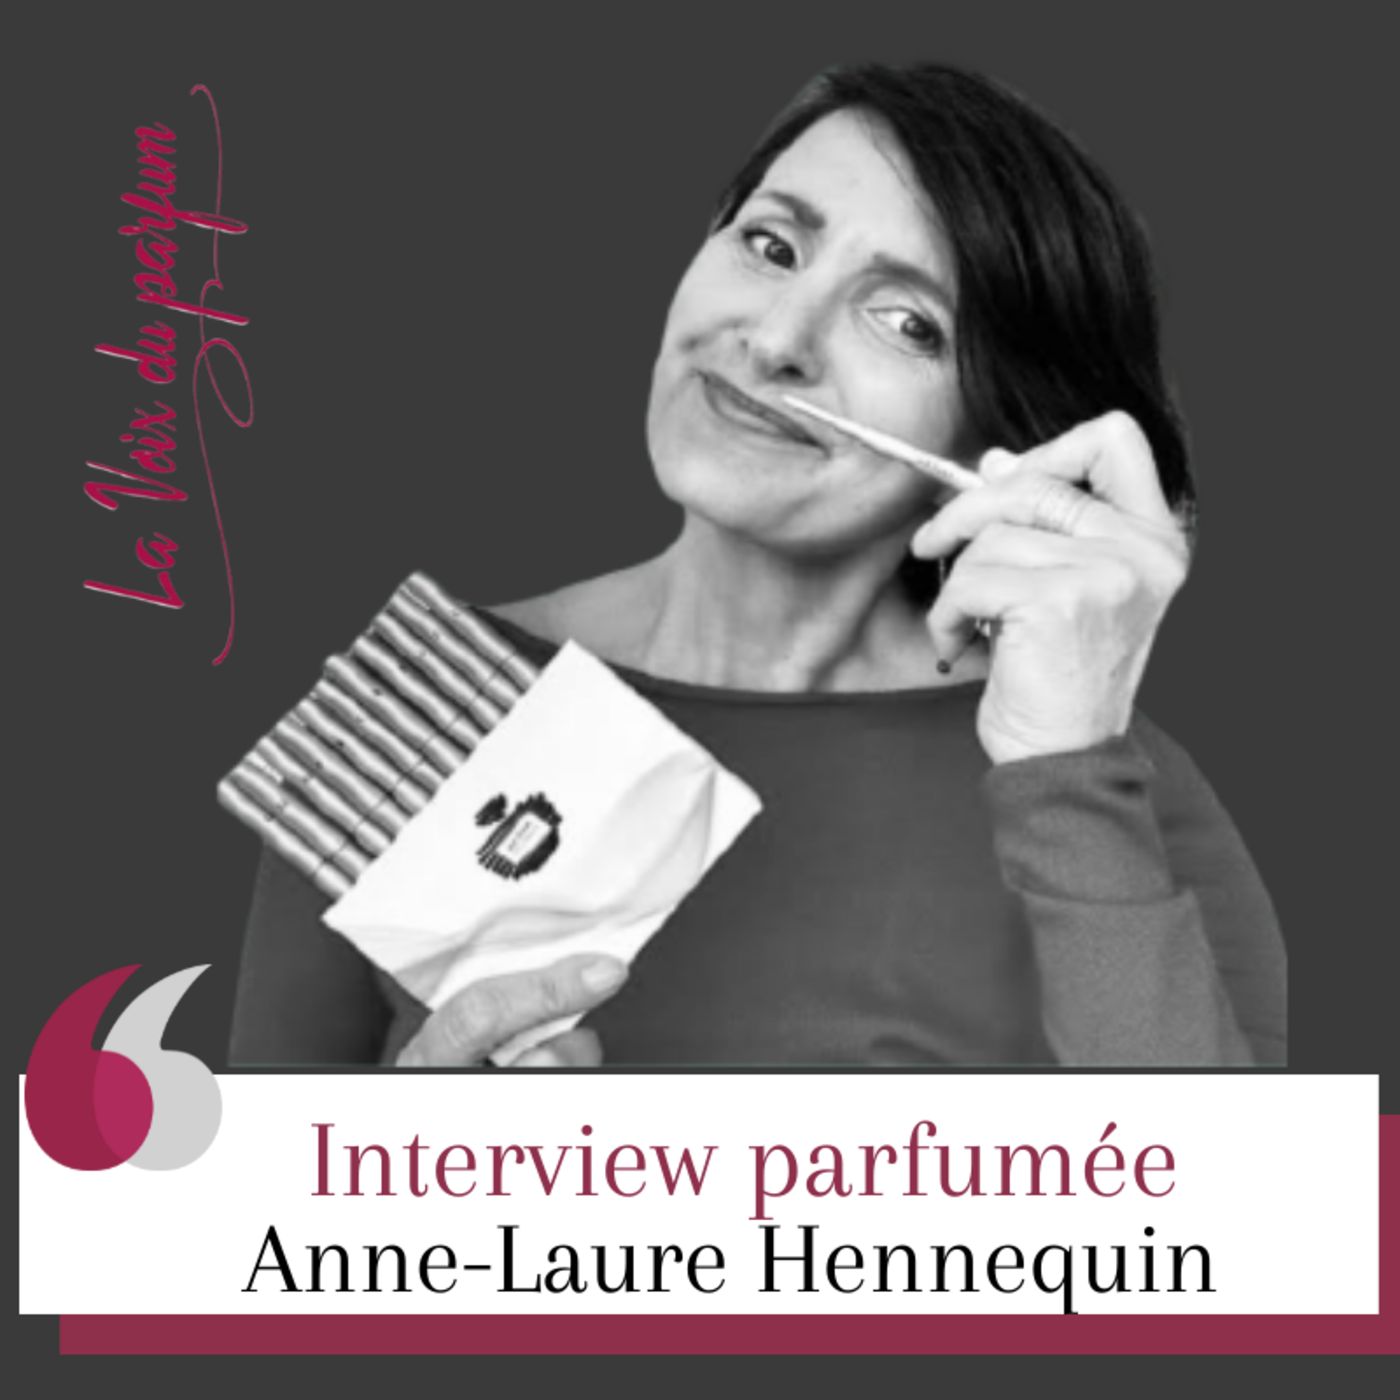 Anne-Laure Hennequin